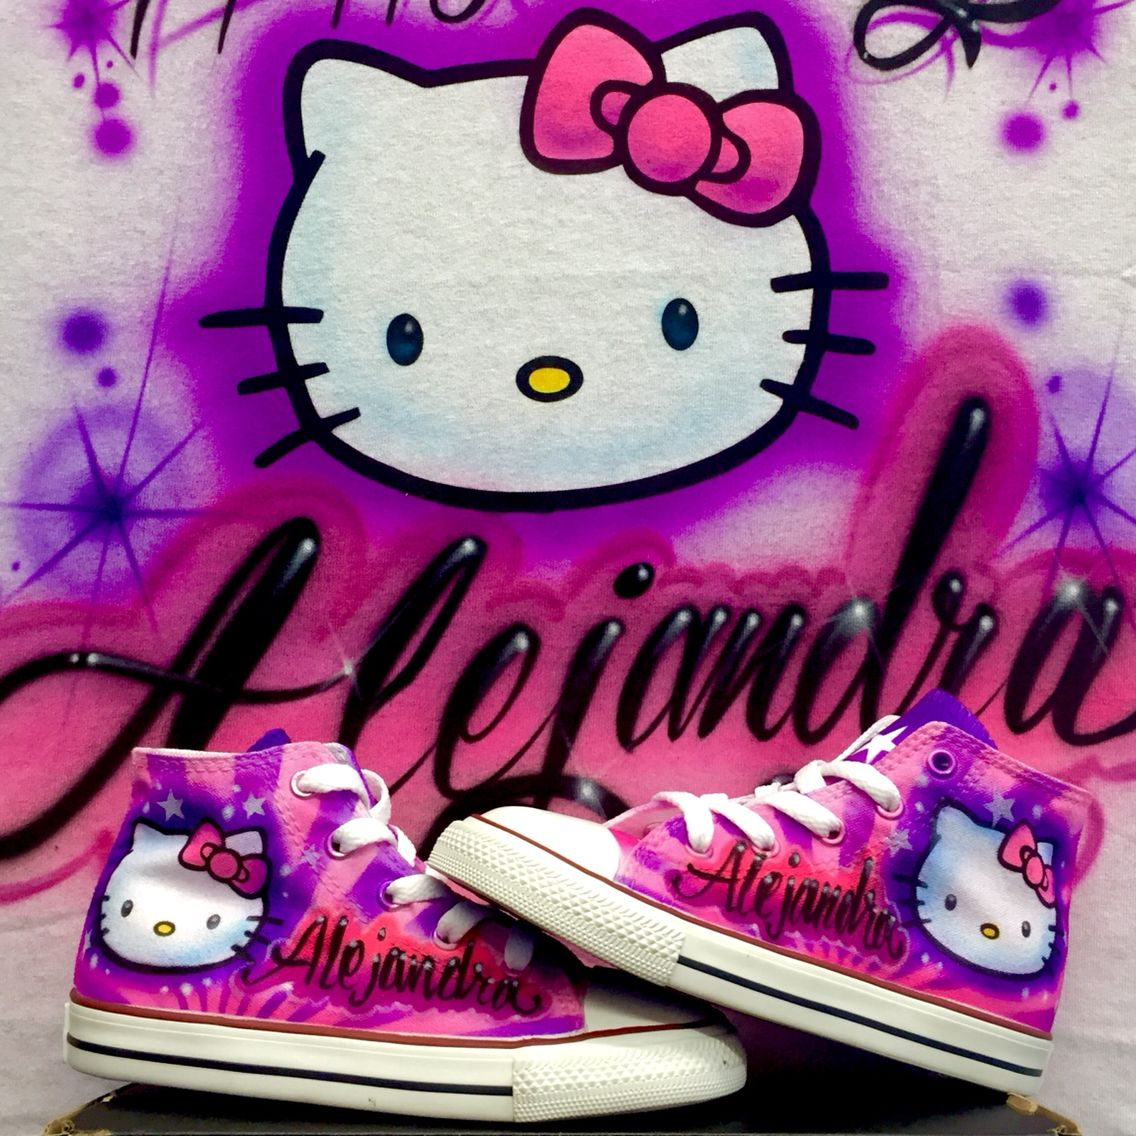 Hello Kitty Set Shirt And Shoes Fell Free To Share